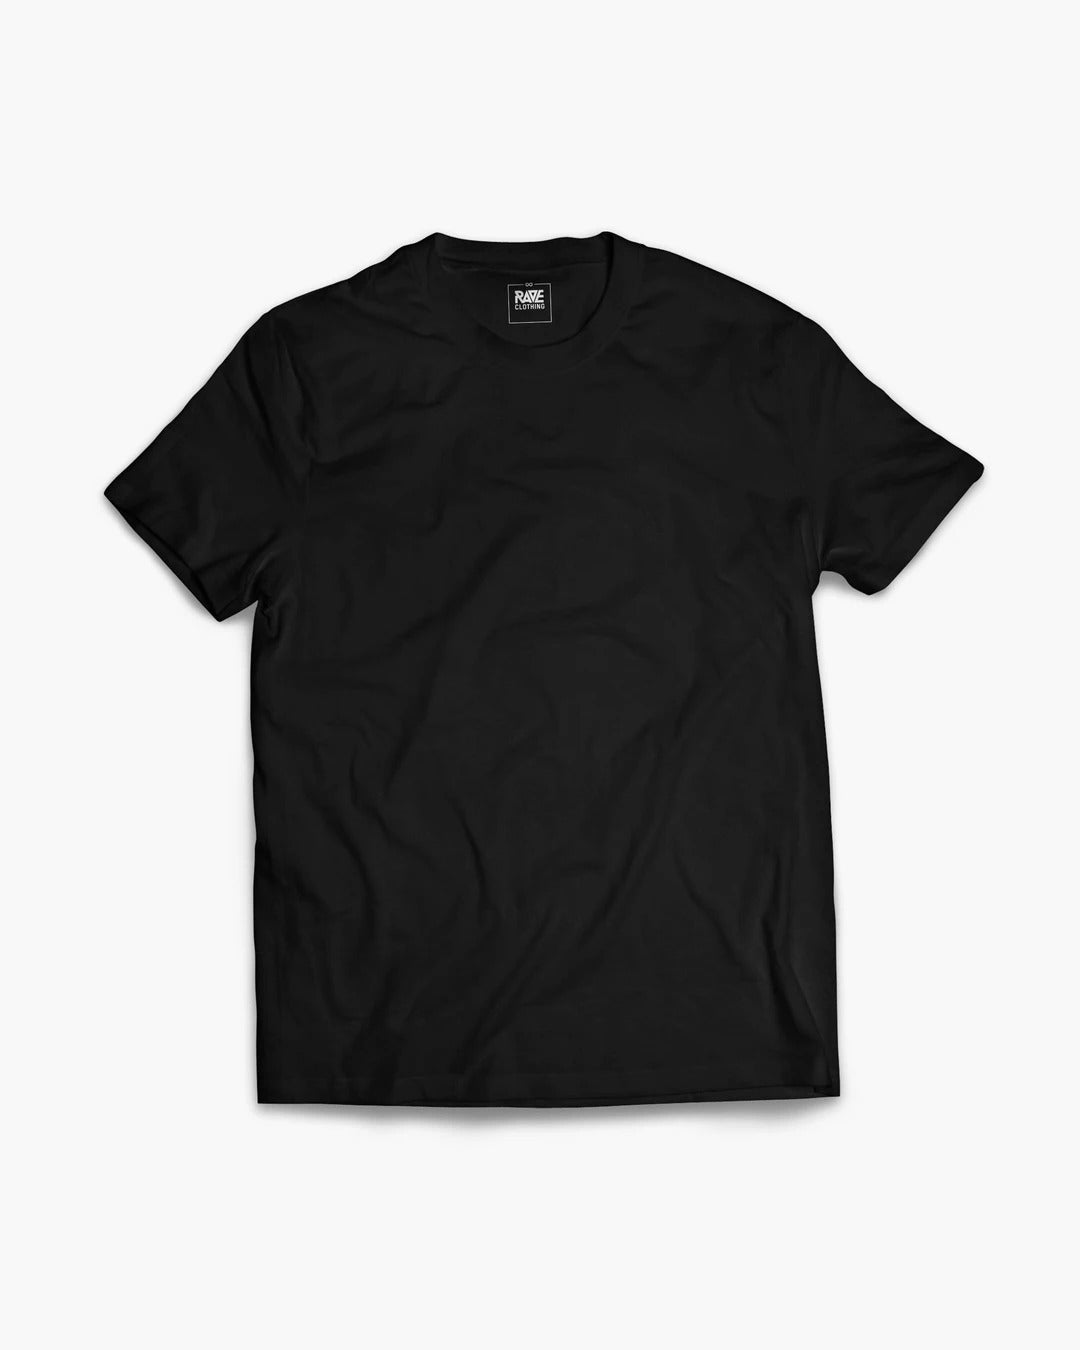 Kittball Records Crew T-Shirt by RAVE Clothing